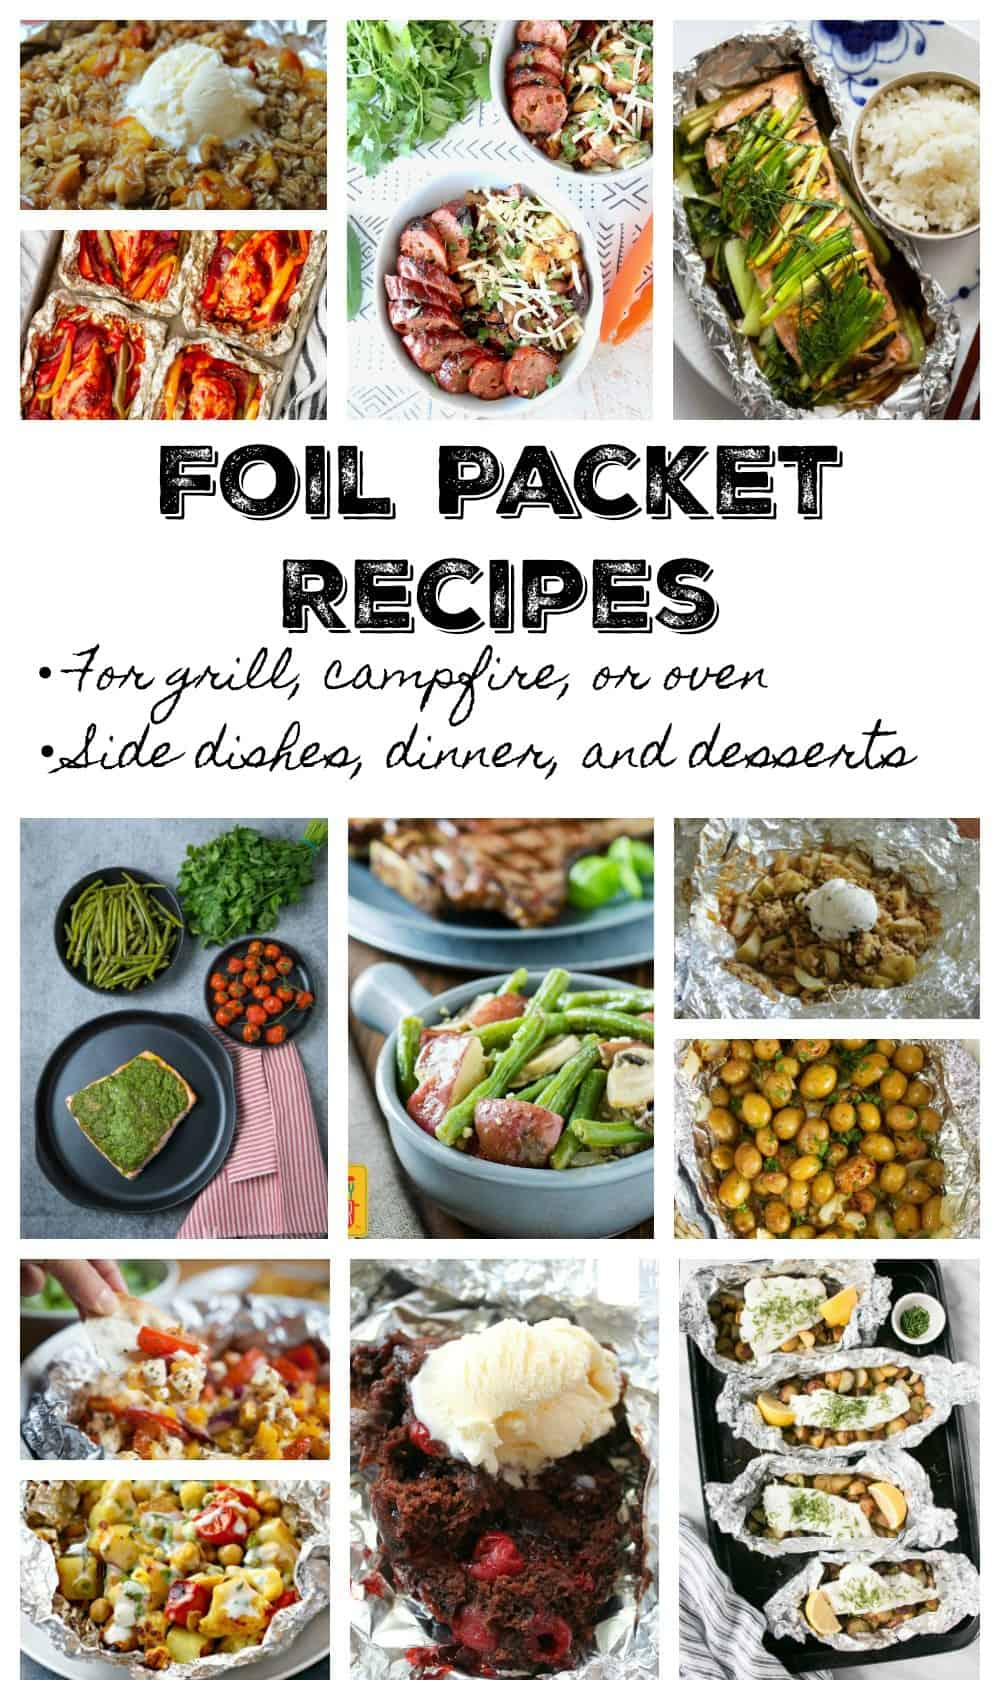 Collage of Foil Packet Recipes, including desserts, dinners, and side dishes